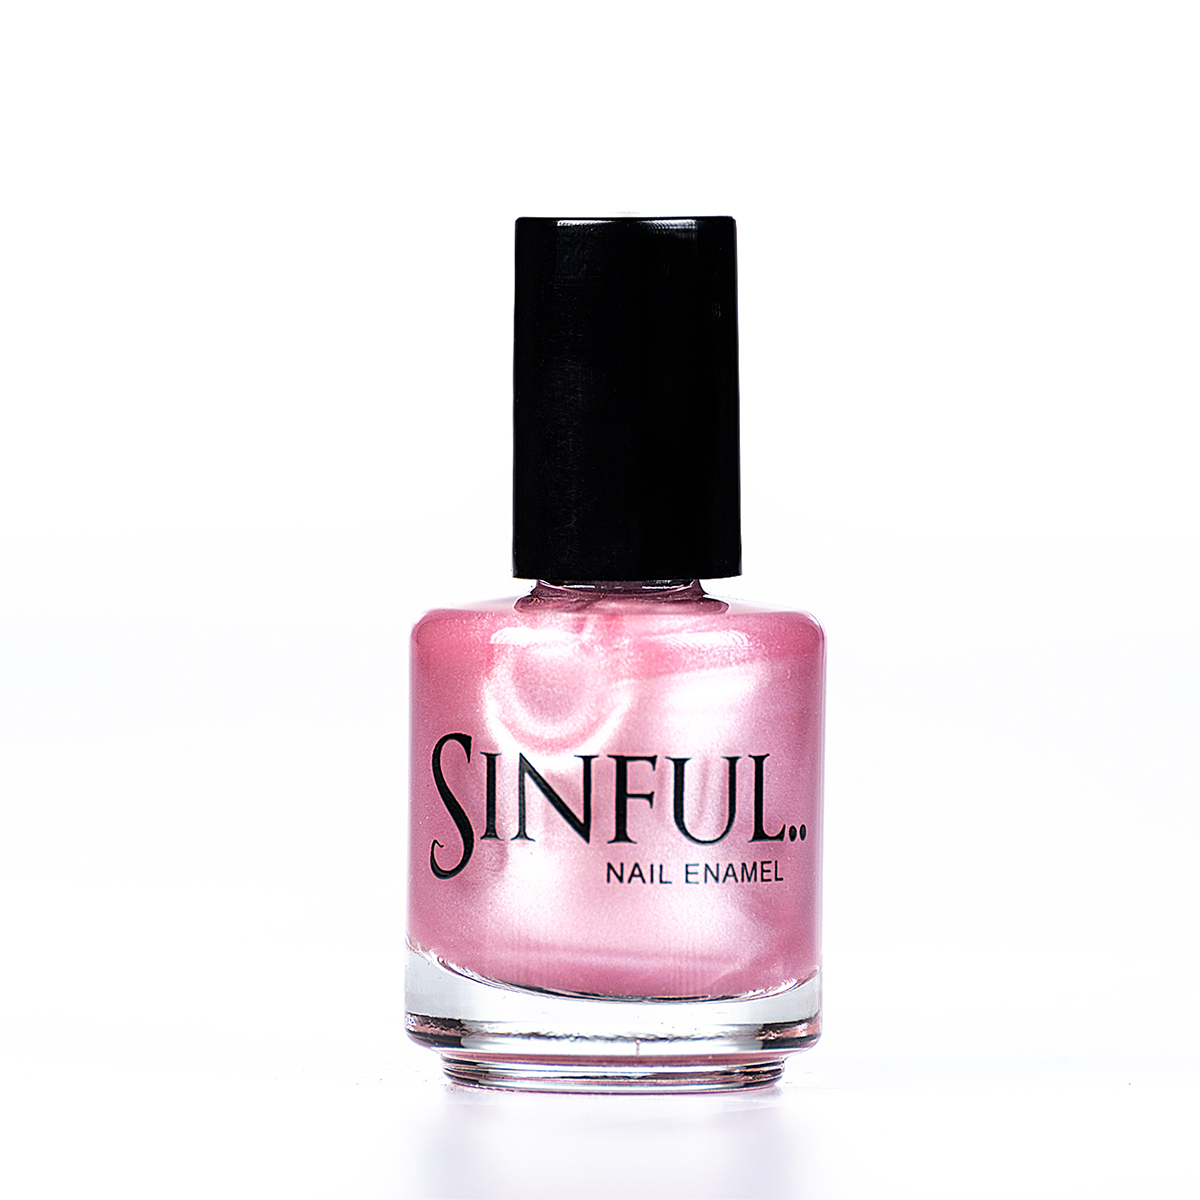 Princess Glossy pale pink - feel like nothing less than a Princess in this colour. Sinful always recommends applying two coats of polish to give a solid colour, then applying top coat to extend the wear-time of the polish. 15ml